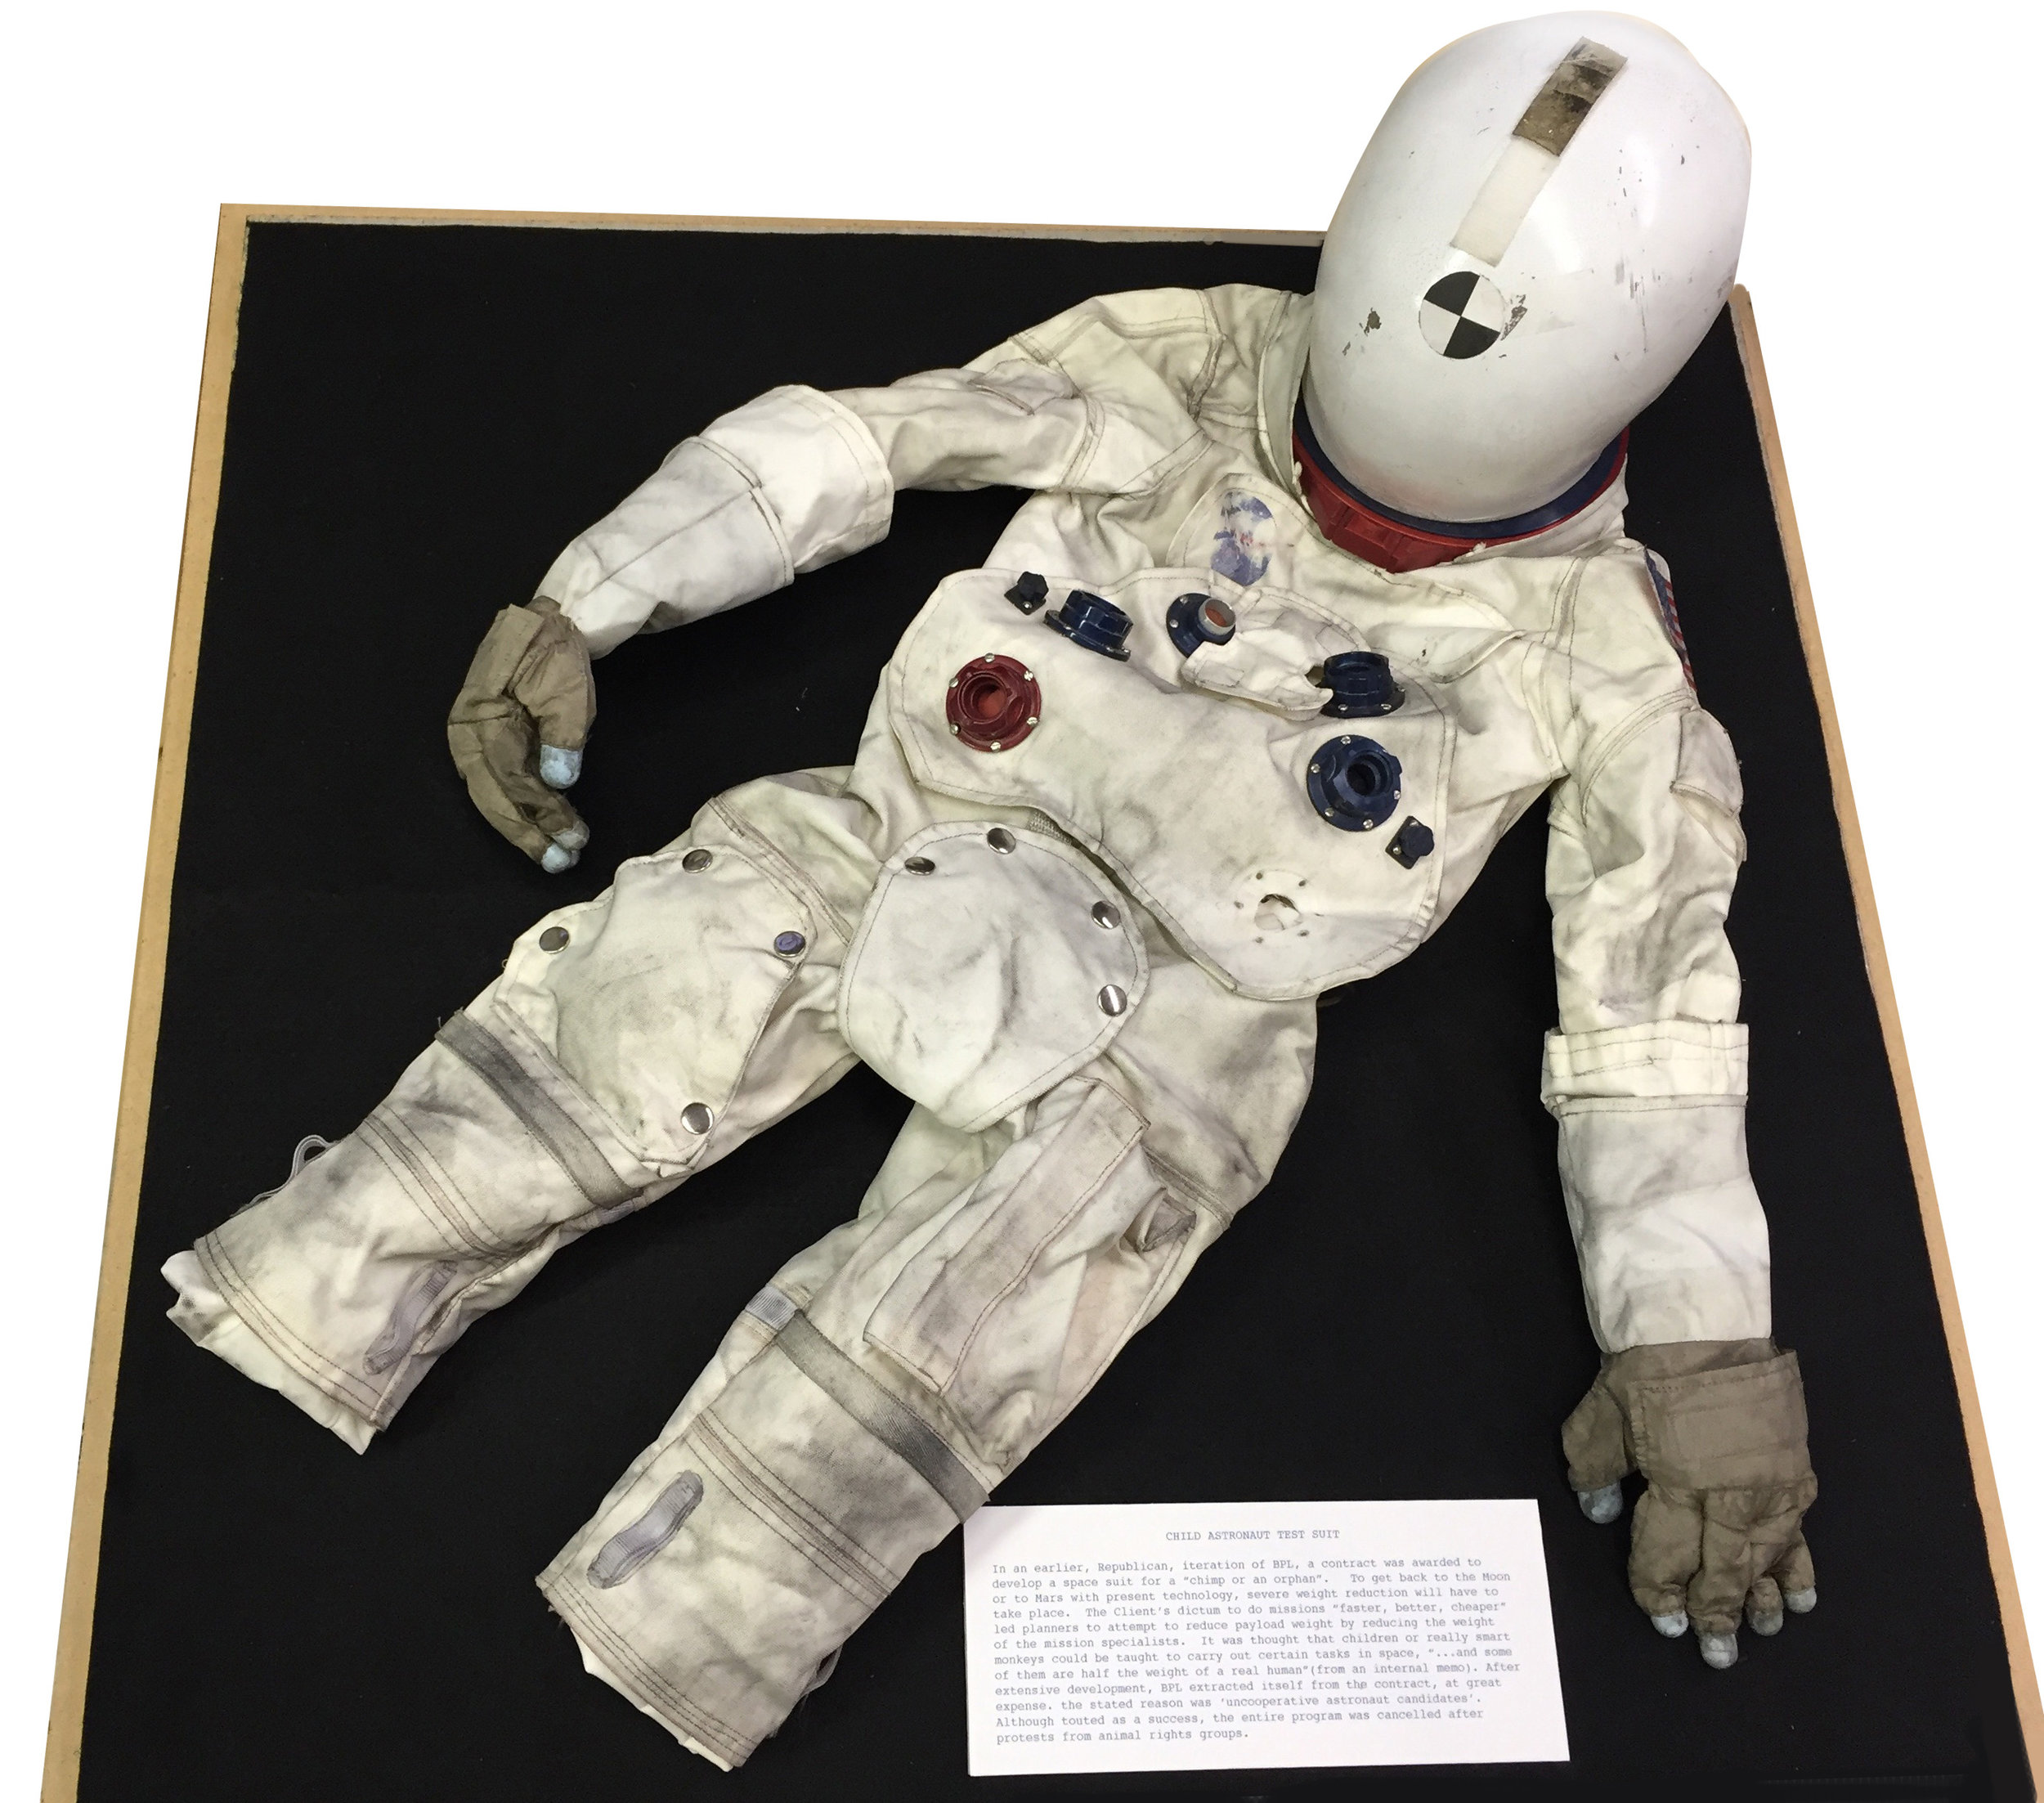 Steven Brower,  Child Astronaut Test Suit,  2007, nylon, aluminum, silicone, steel, 7h x 19w x 17d in.